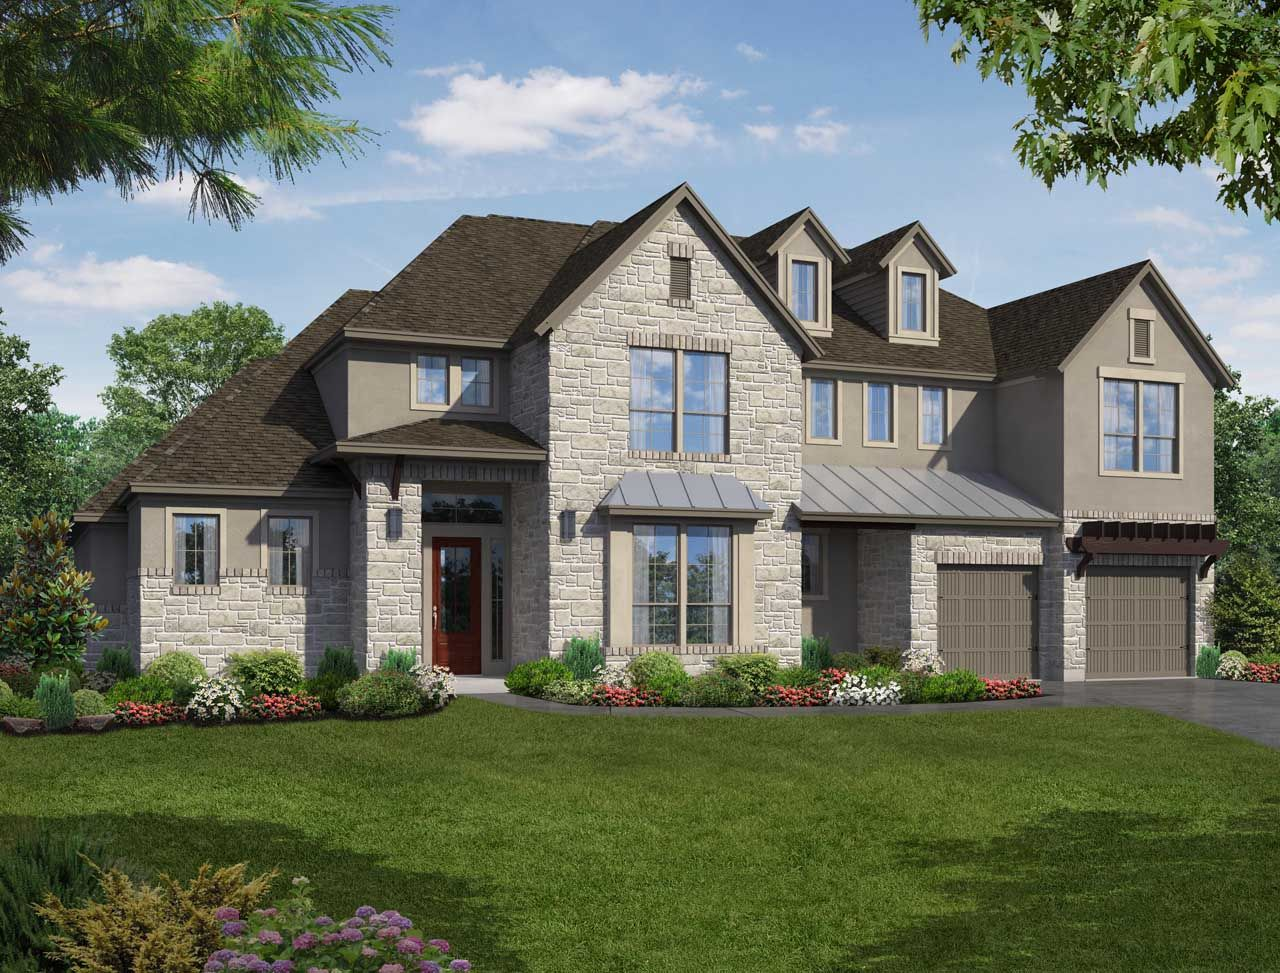 Single Family for Sale at Lakes Edge 80' - Plan 844m 11506 Lake Stone Drive Bee Cave, Texas 78738 United States